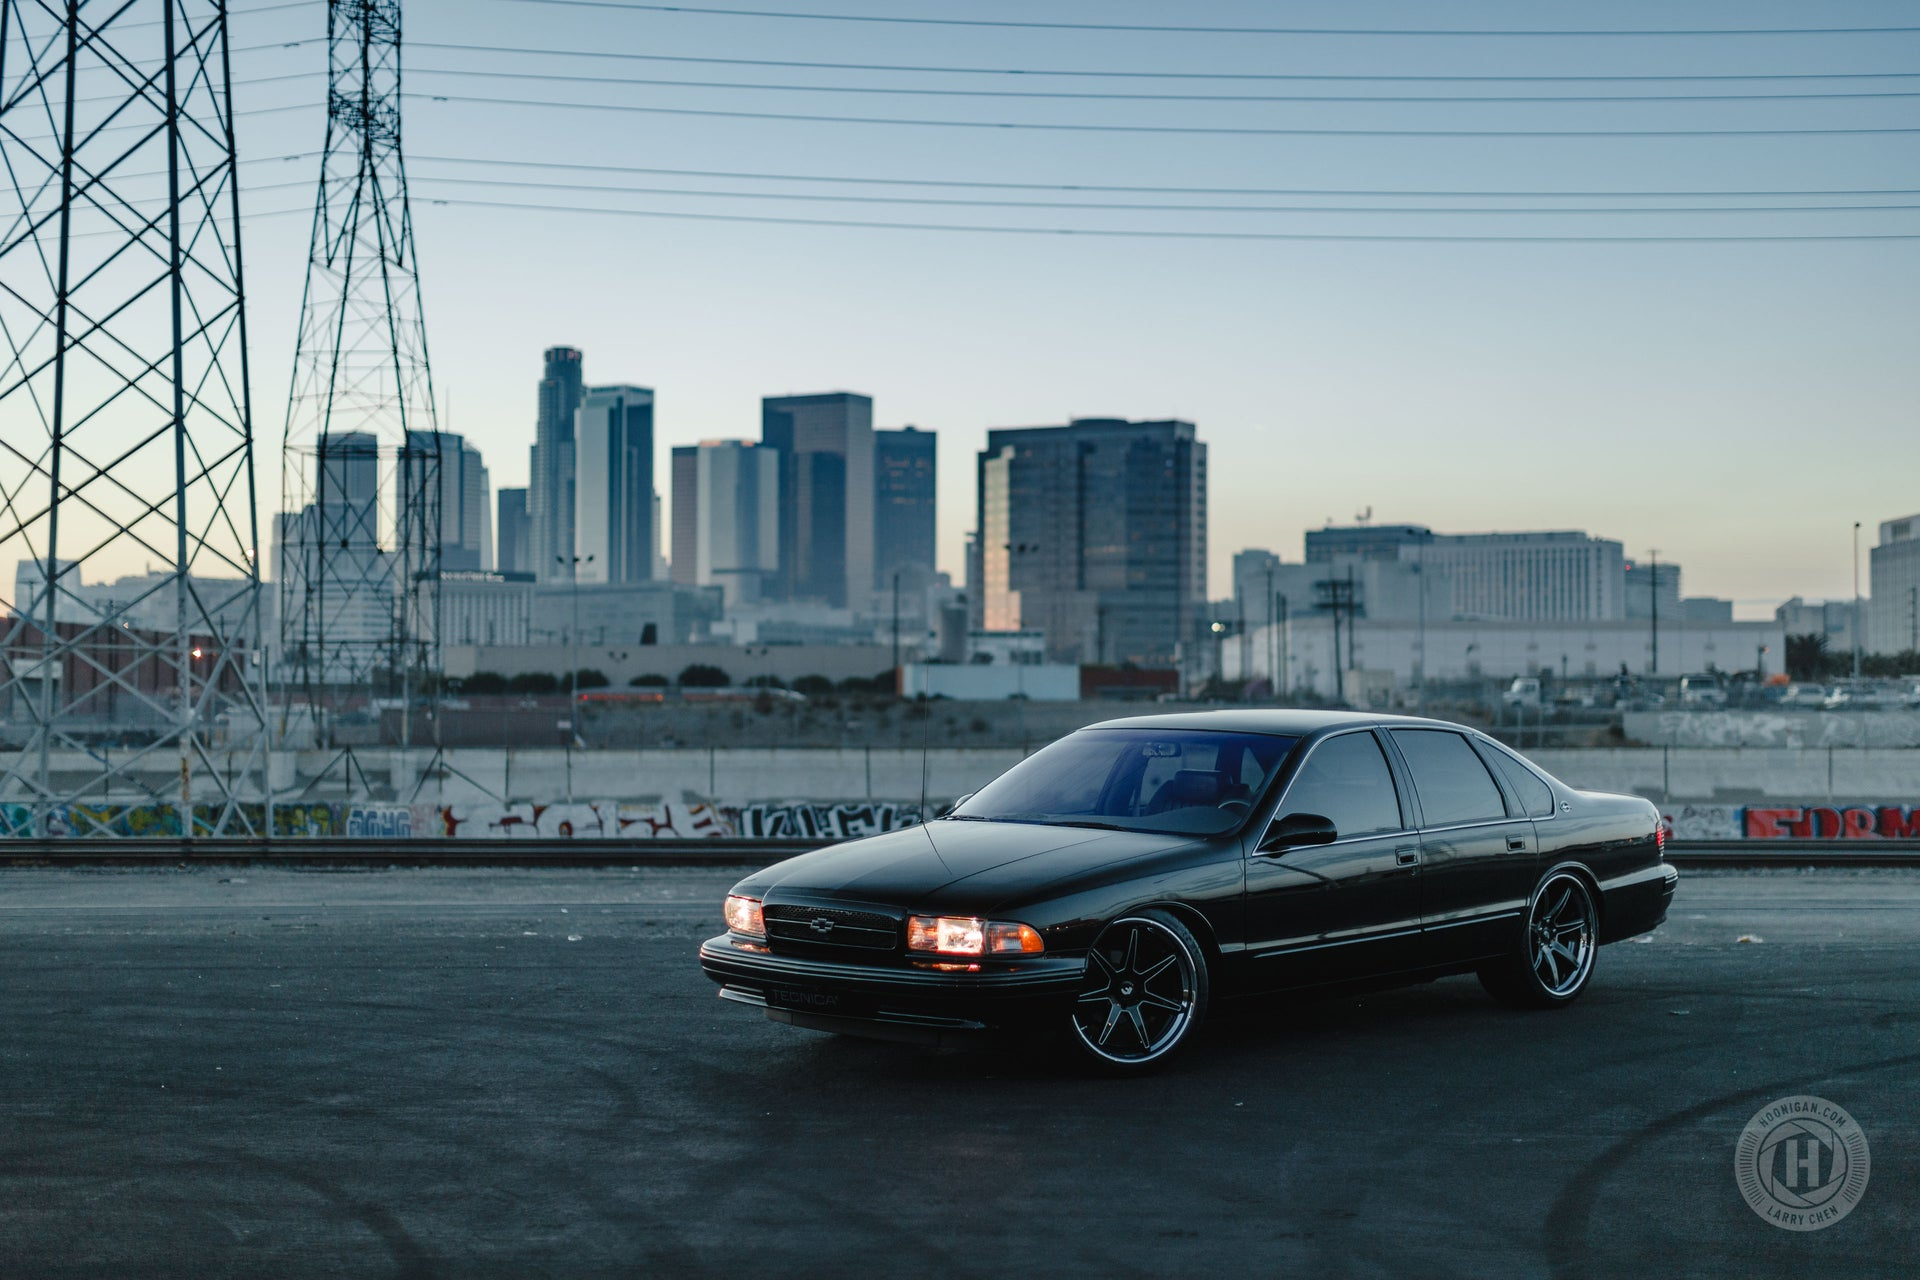 Killer Mike's 1996 Chevy Impala SS